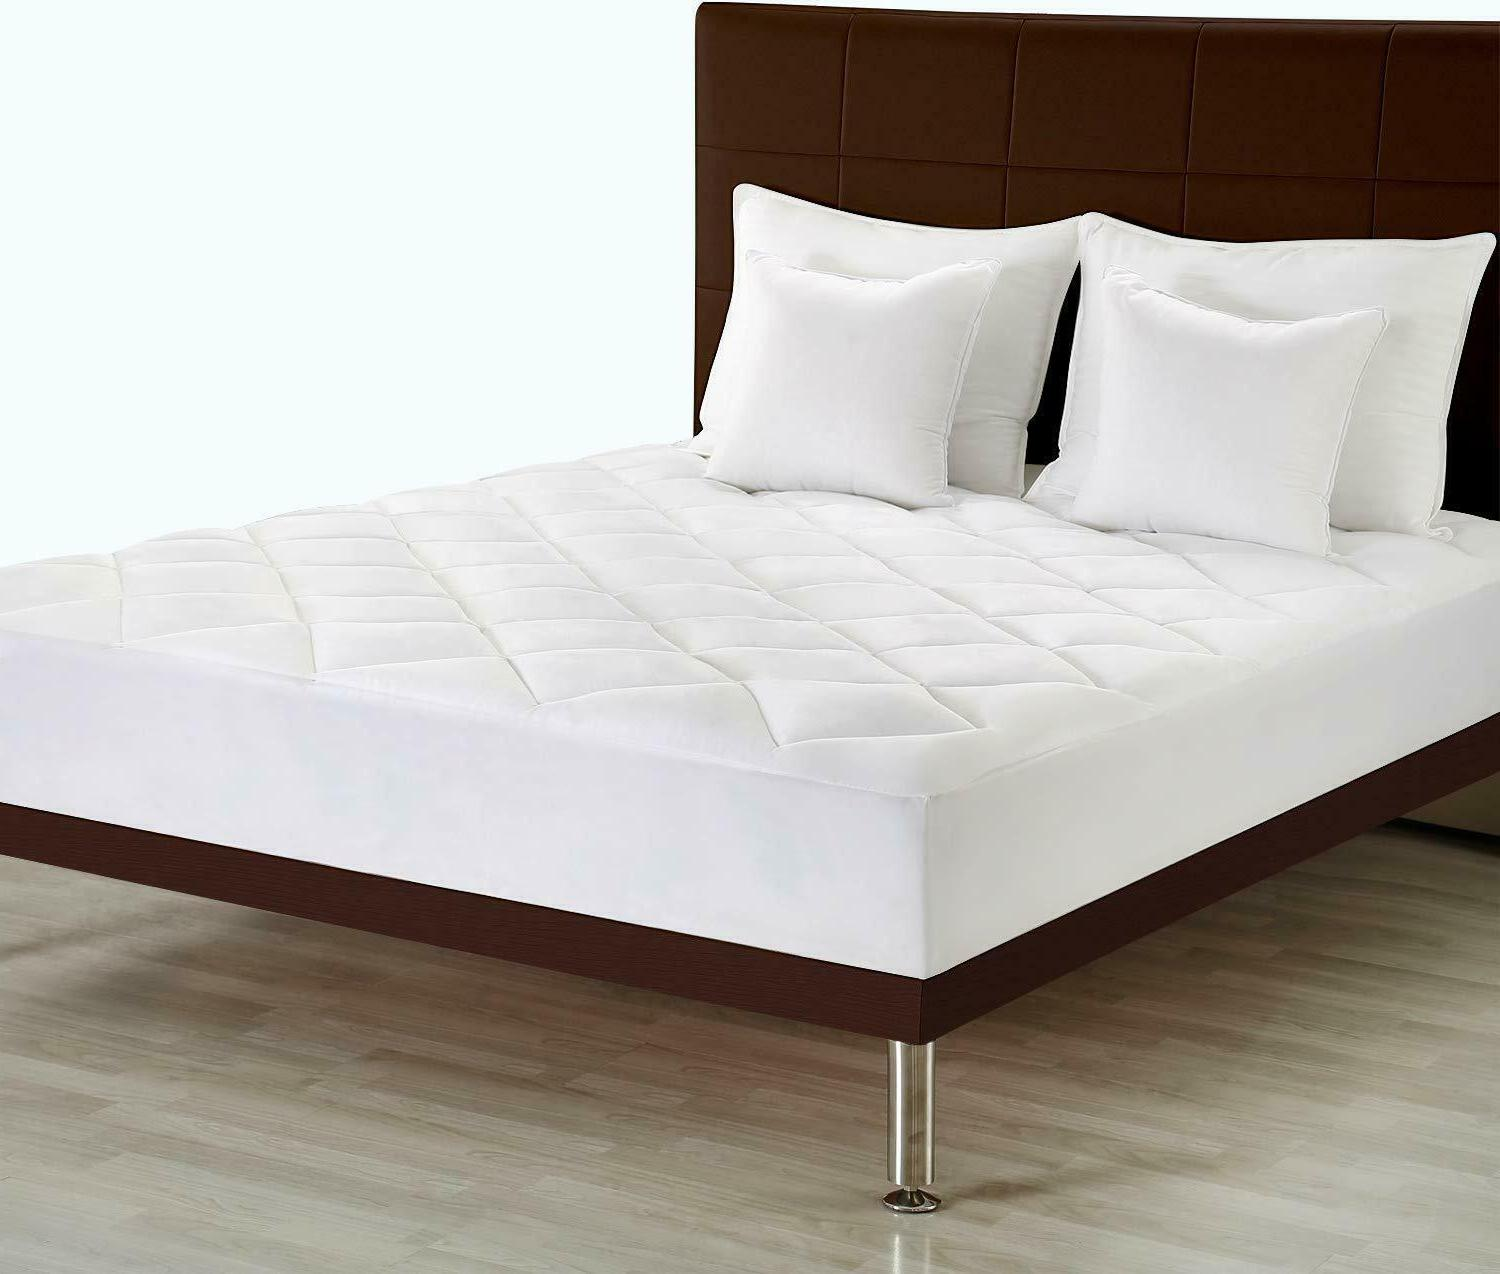 Cal King Quilted Mattress Pad Fitted Mattress Topper Utopia